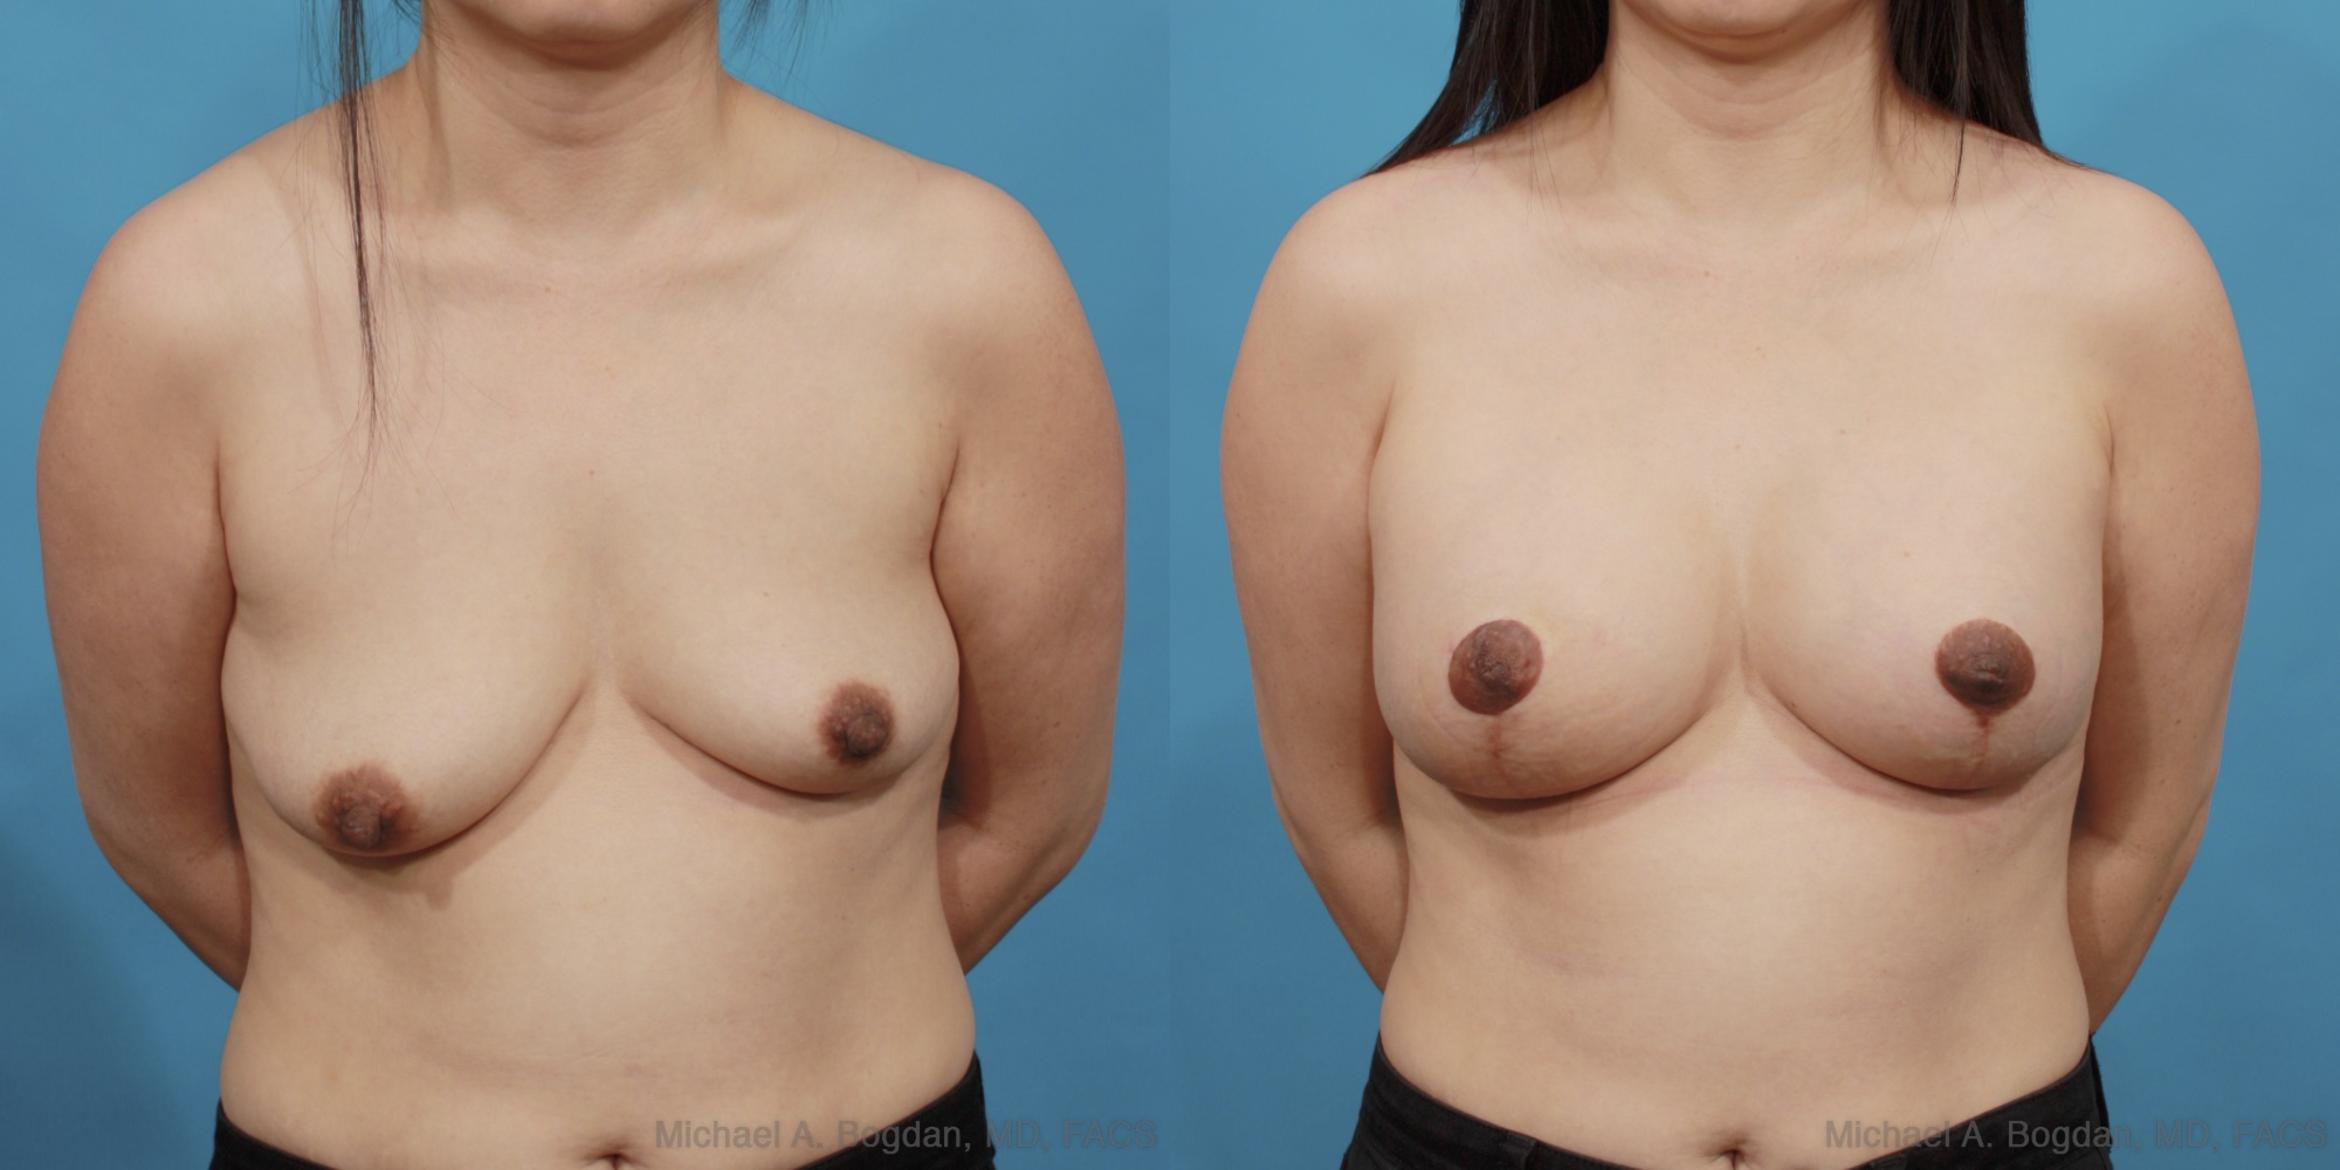 Mastopexy & Augmentation Case 537 Before & After View #1 | Fort Worth & Frisco, Texas | Michael A. Bogdan, MD, FACS